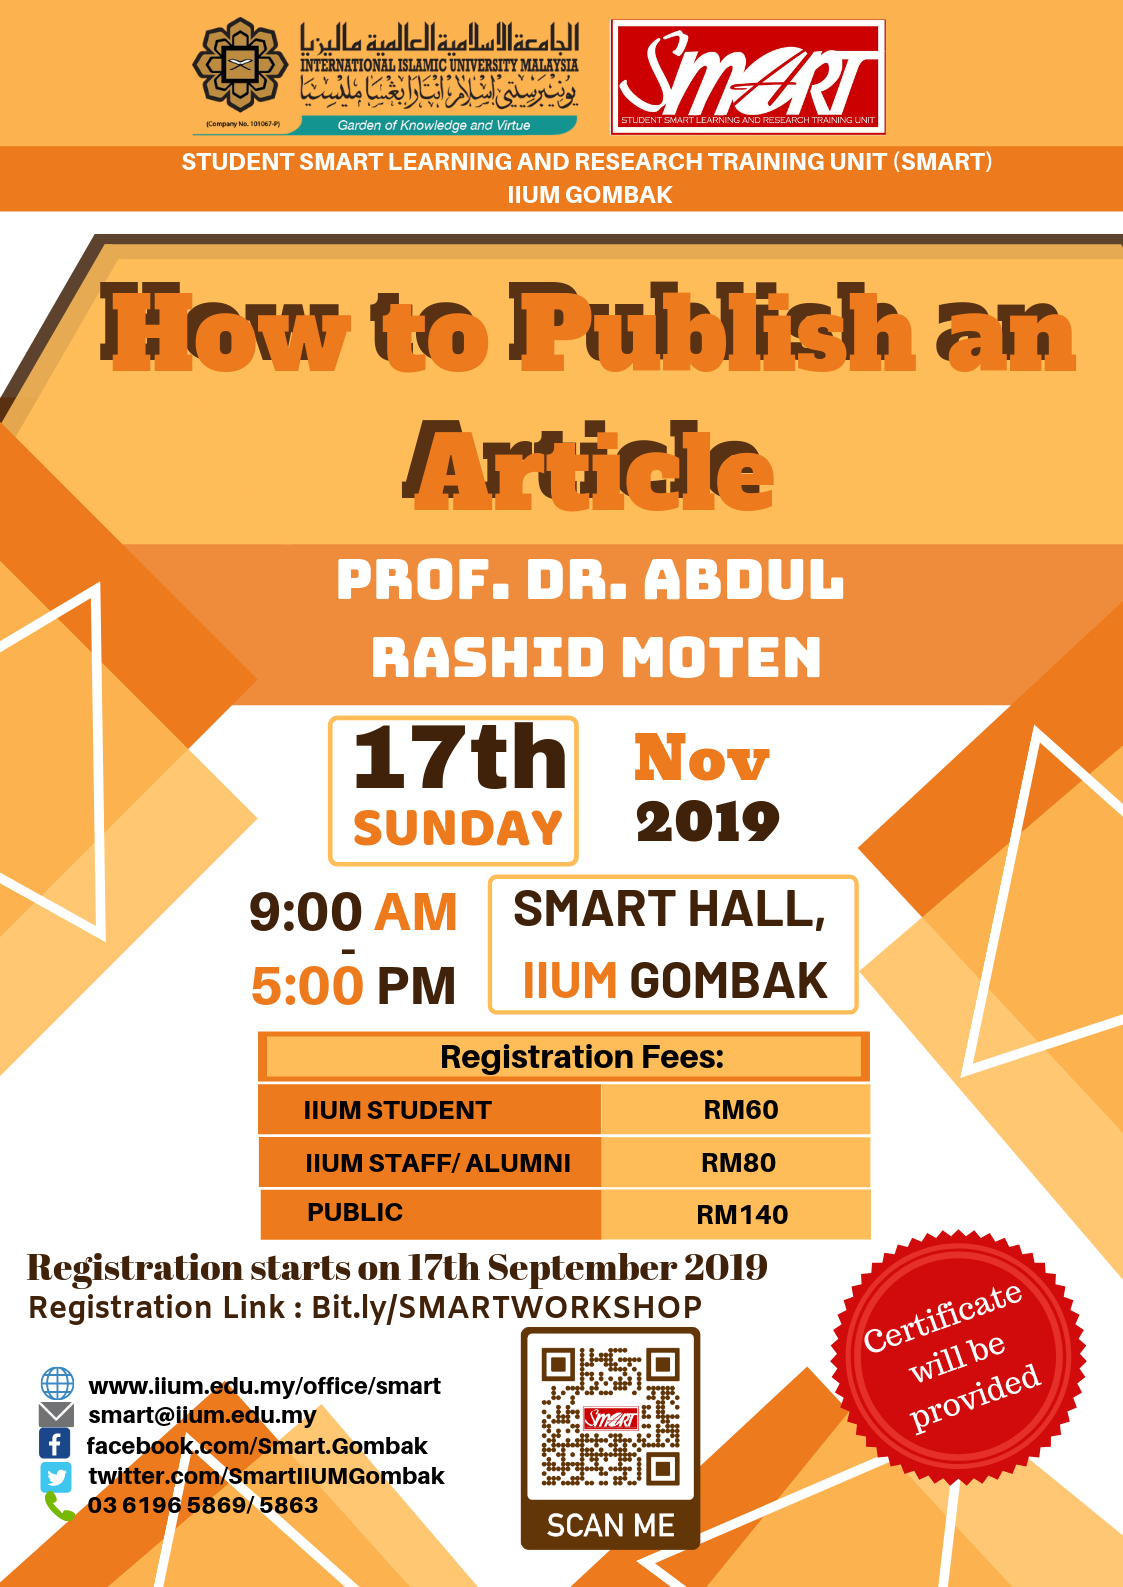 SEM 1, 19/20 - WORKSHOP - HOW TO PUBLISH AN ARTICLE